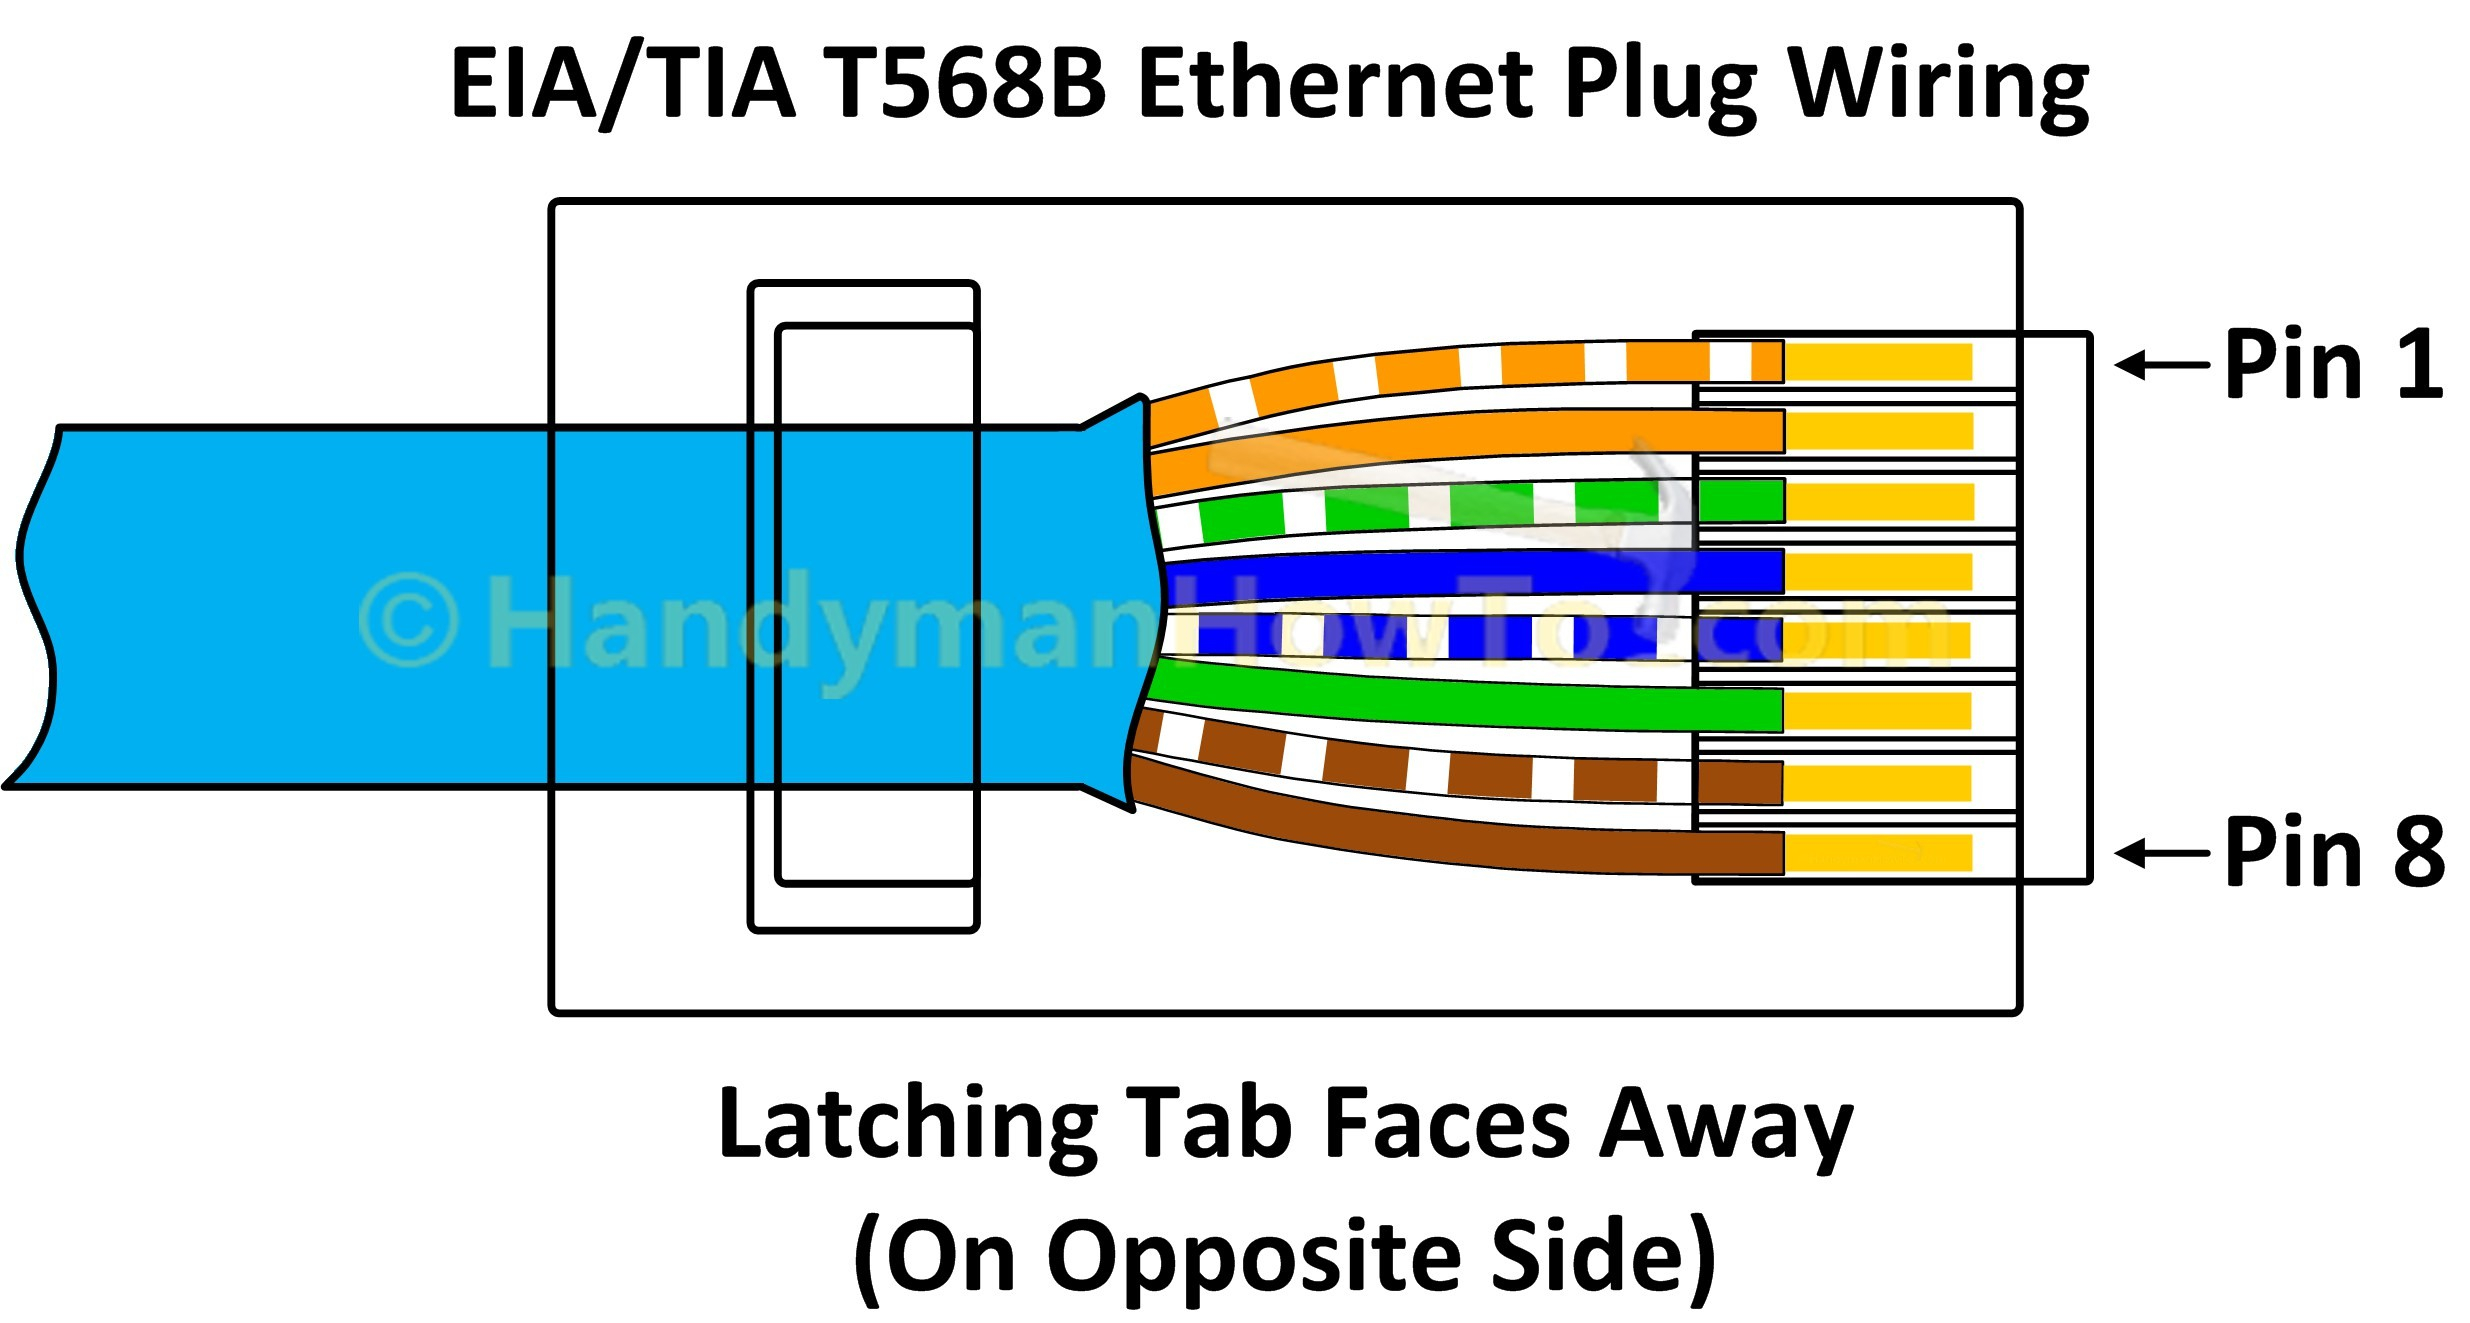 cat 5 wiring diagram wall jack Collection-Ethernet Cable Wiring Diagram Unique Unique Wiring Diagram for Cat5 Cable Diagram 5-t